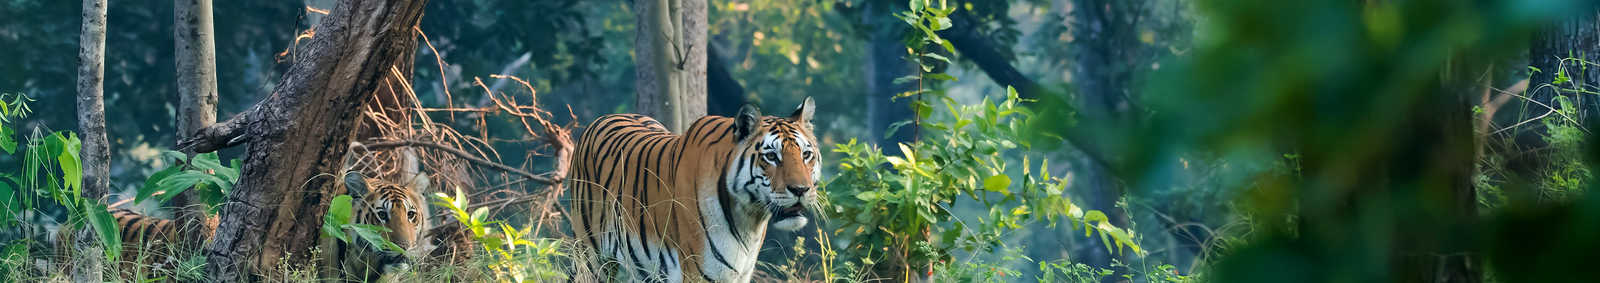 Tiger Pench National Park